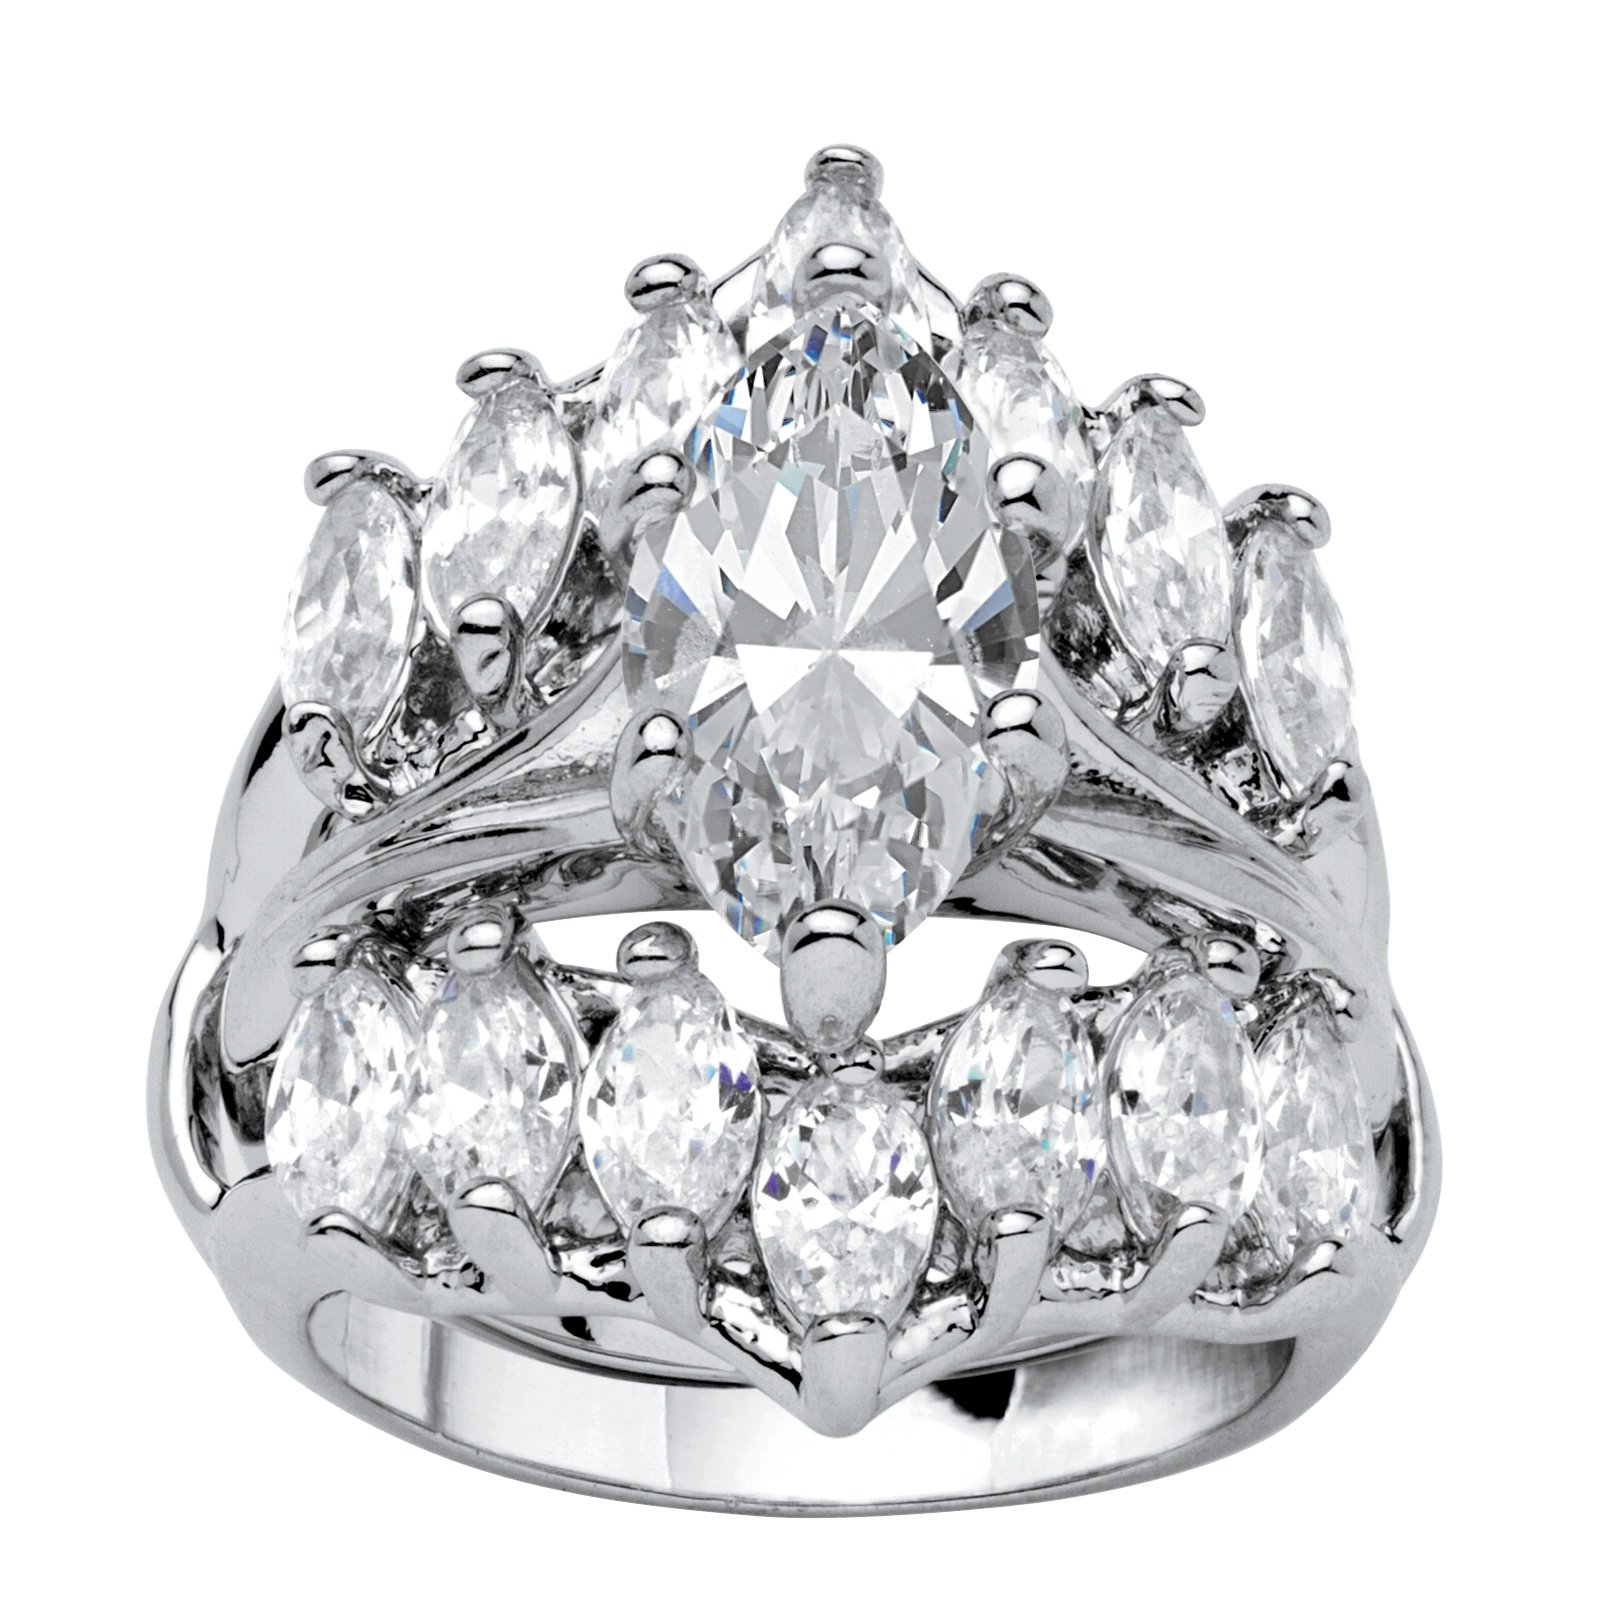 Palm Beach Jewelry Marquise-Cut White Cubic Zirconia Silvertone Jacket Bridal Ring Set Size 5